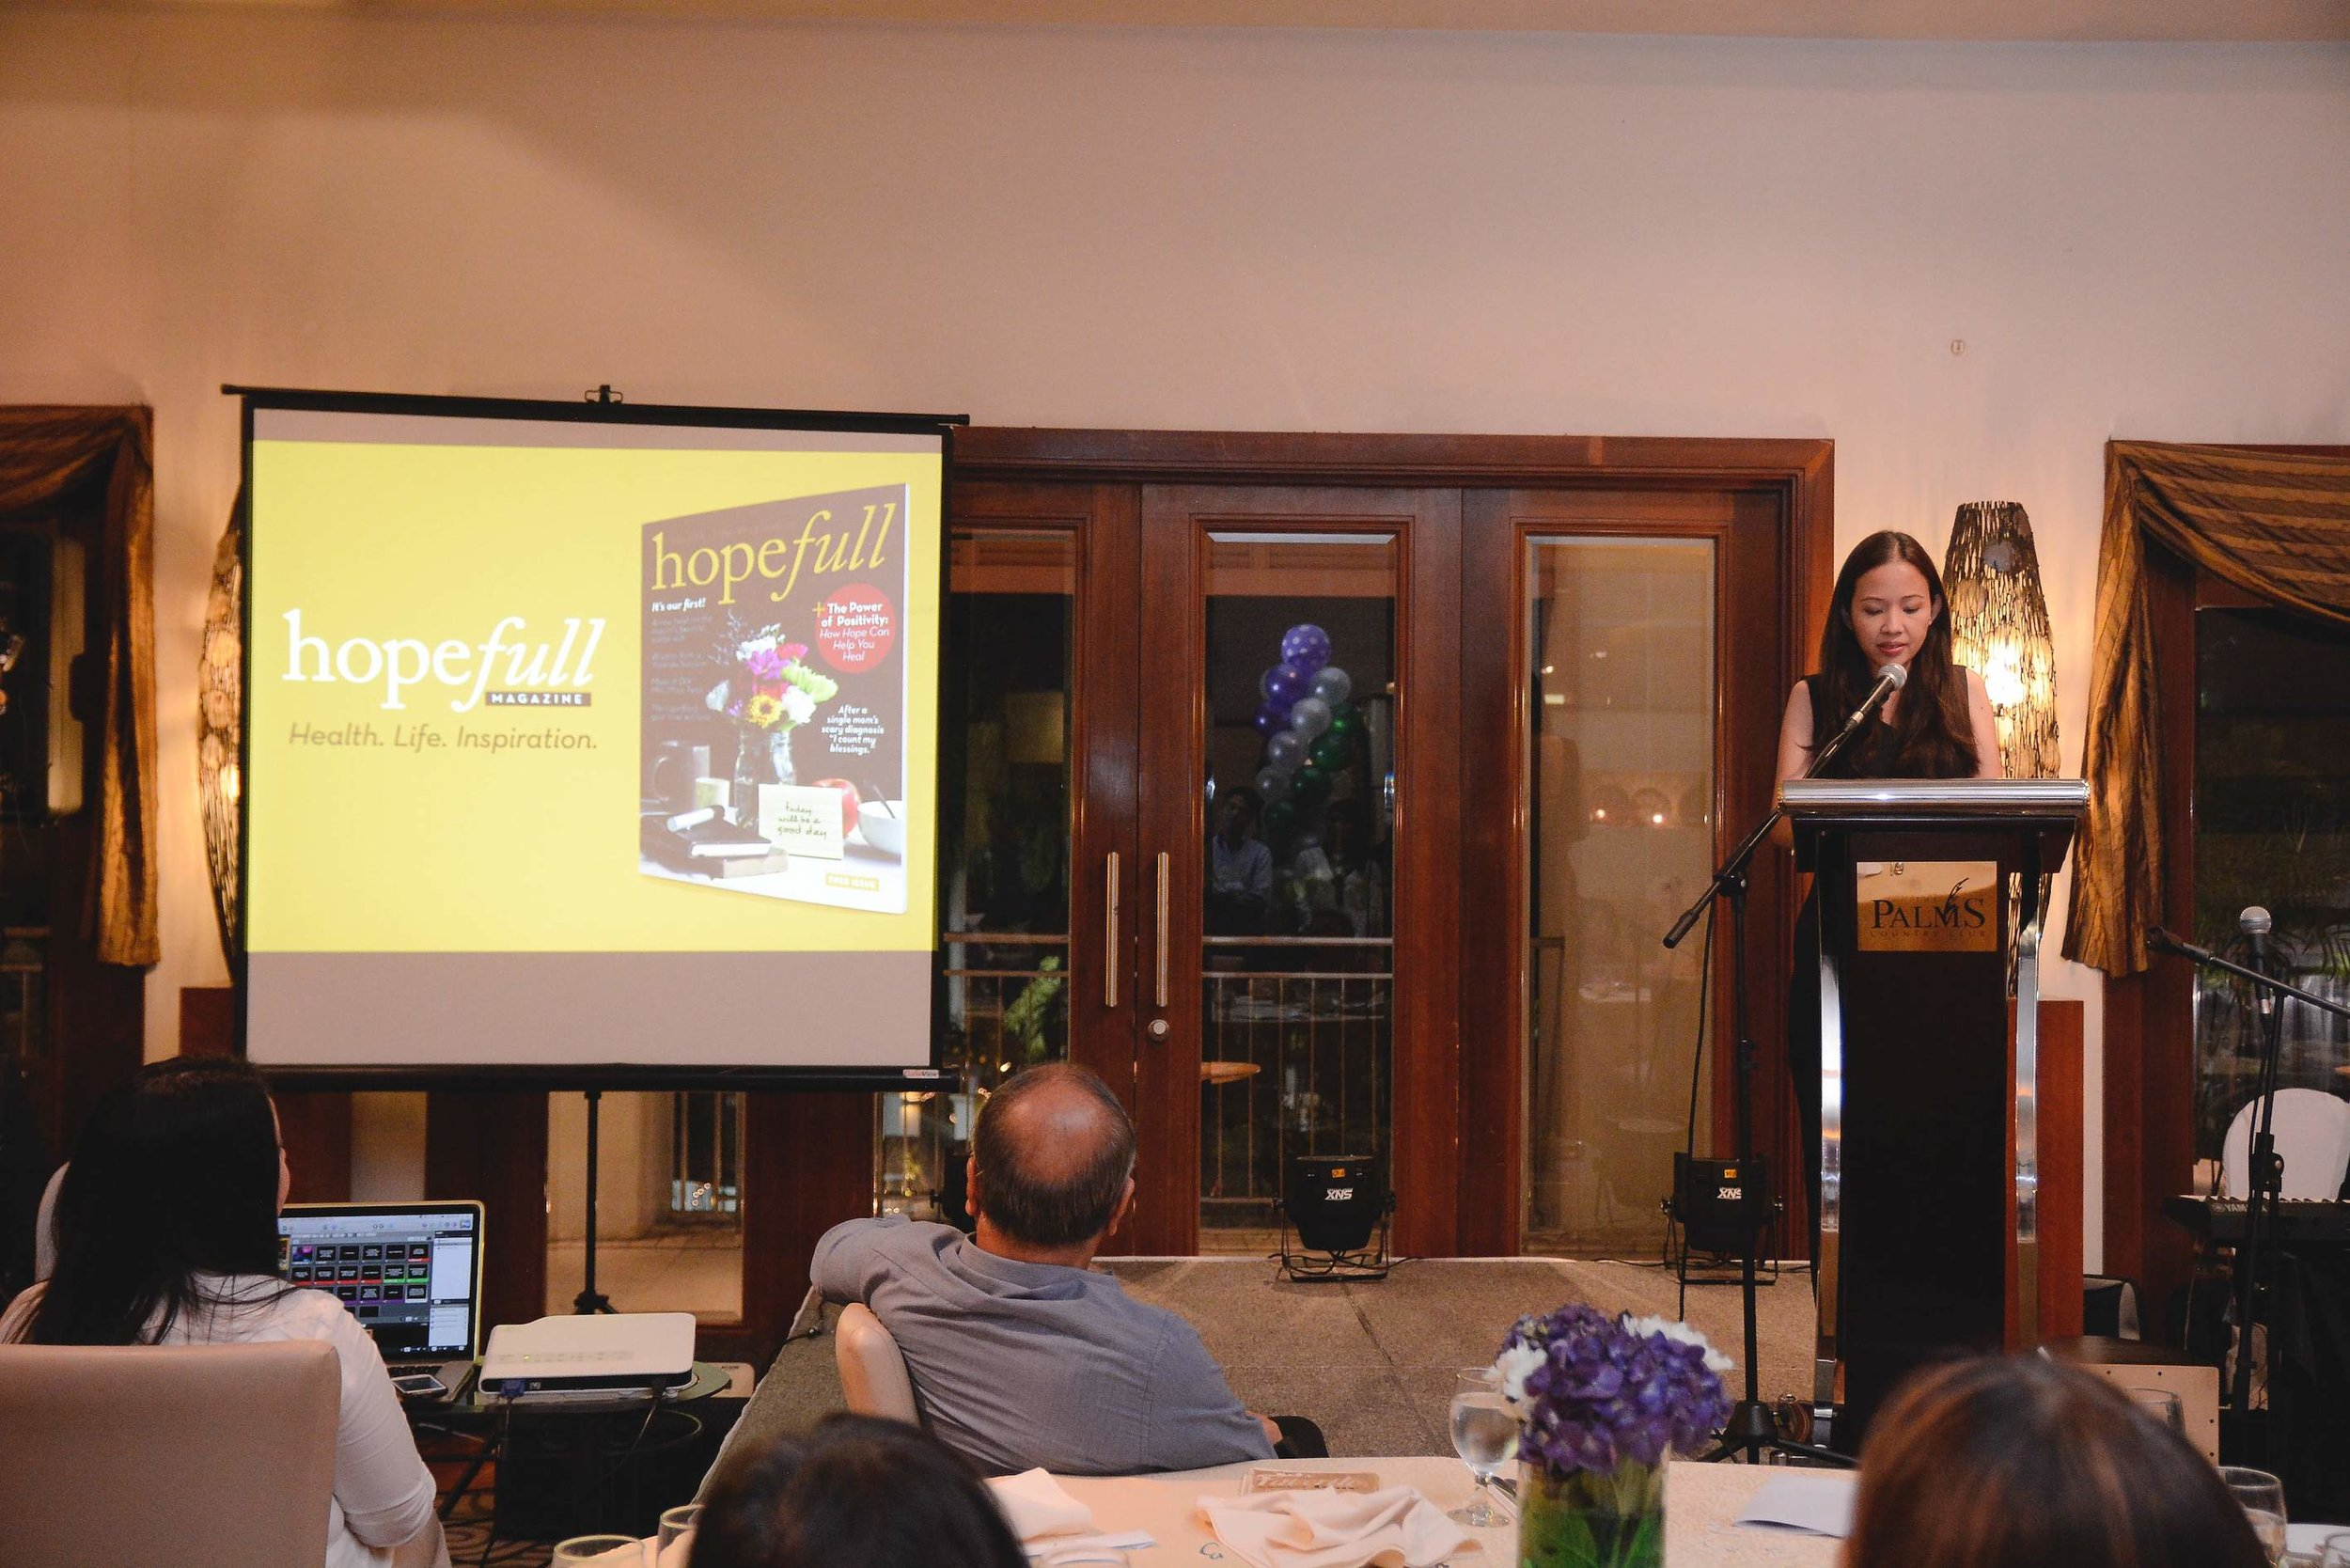 Hope full magazine's editorial director    Ina Amor-Mejia    introducing the first issue